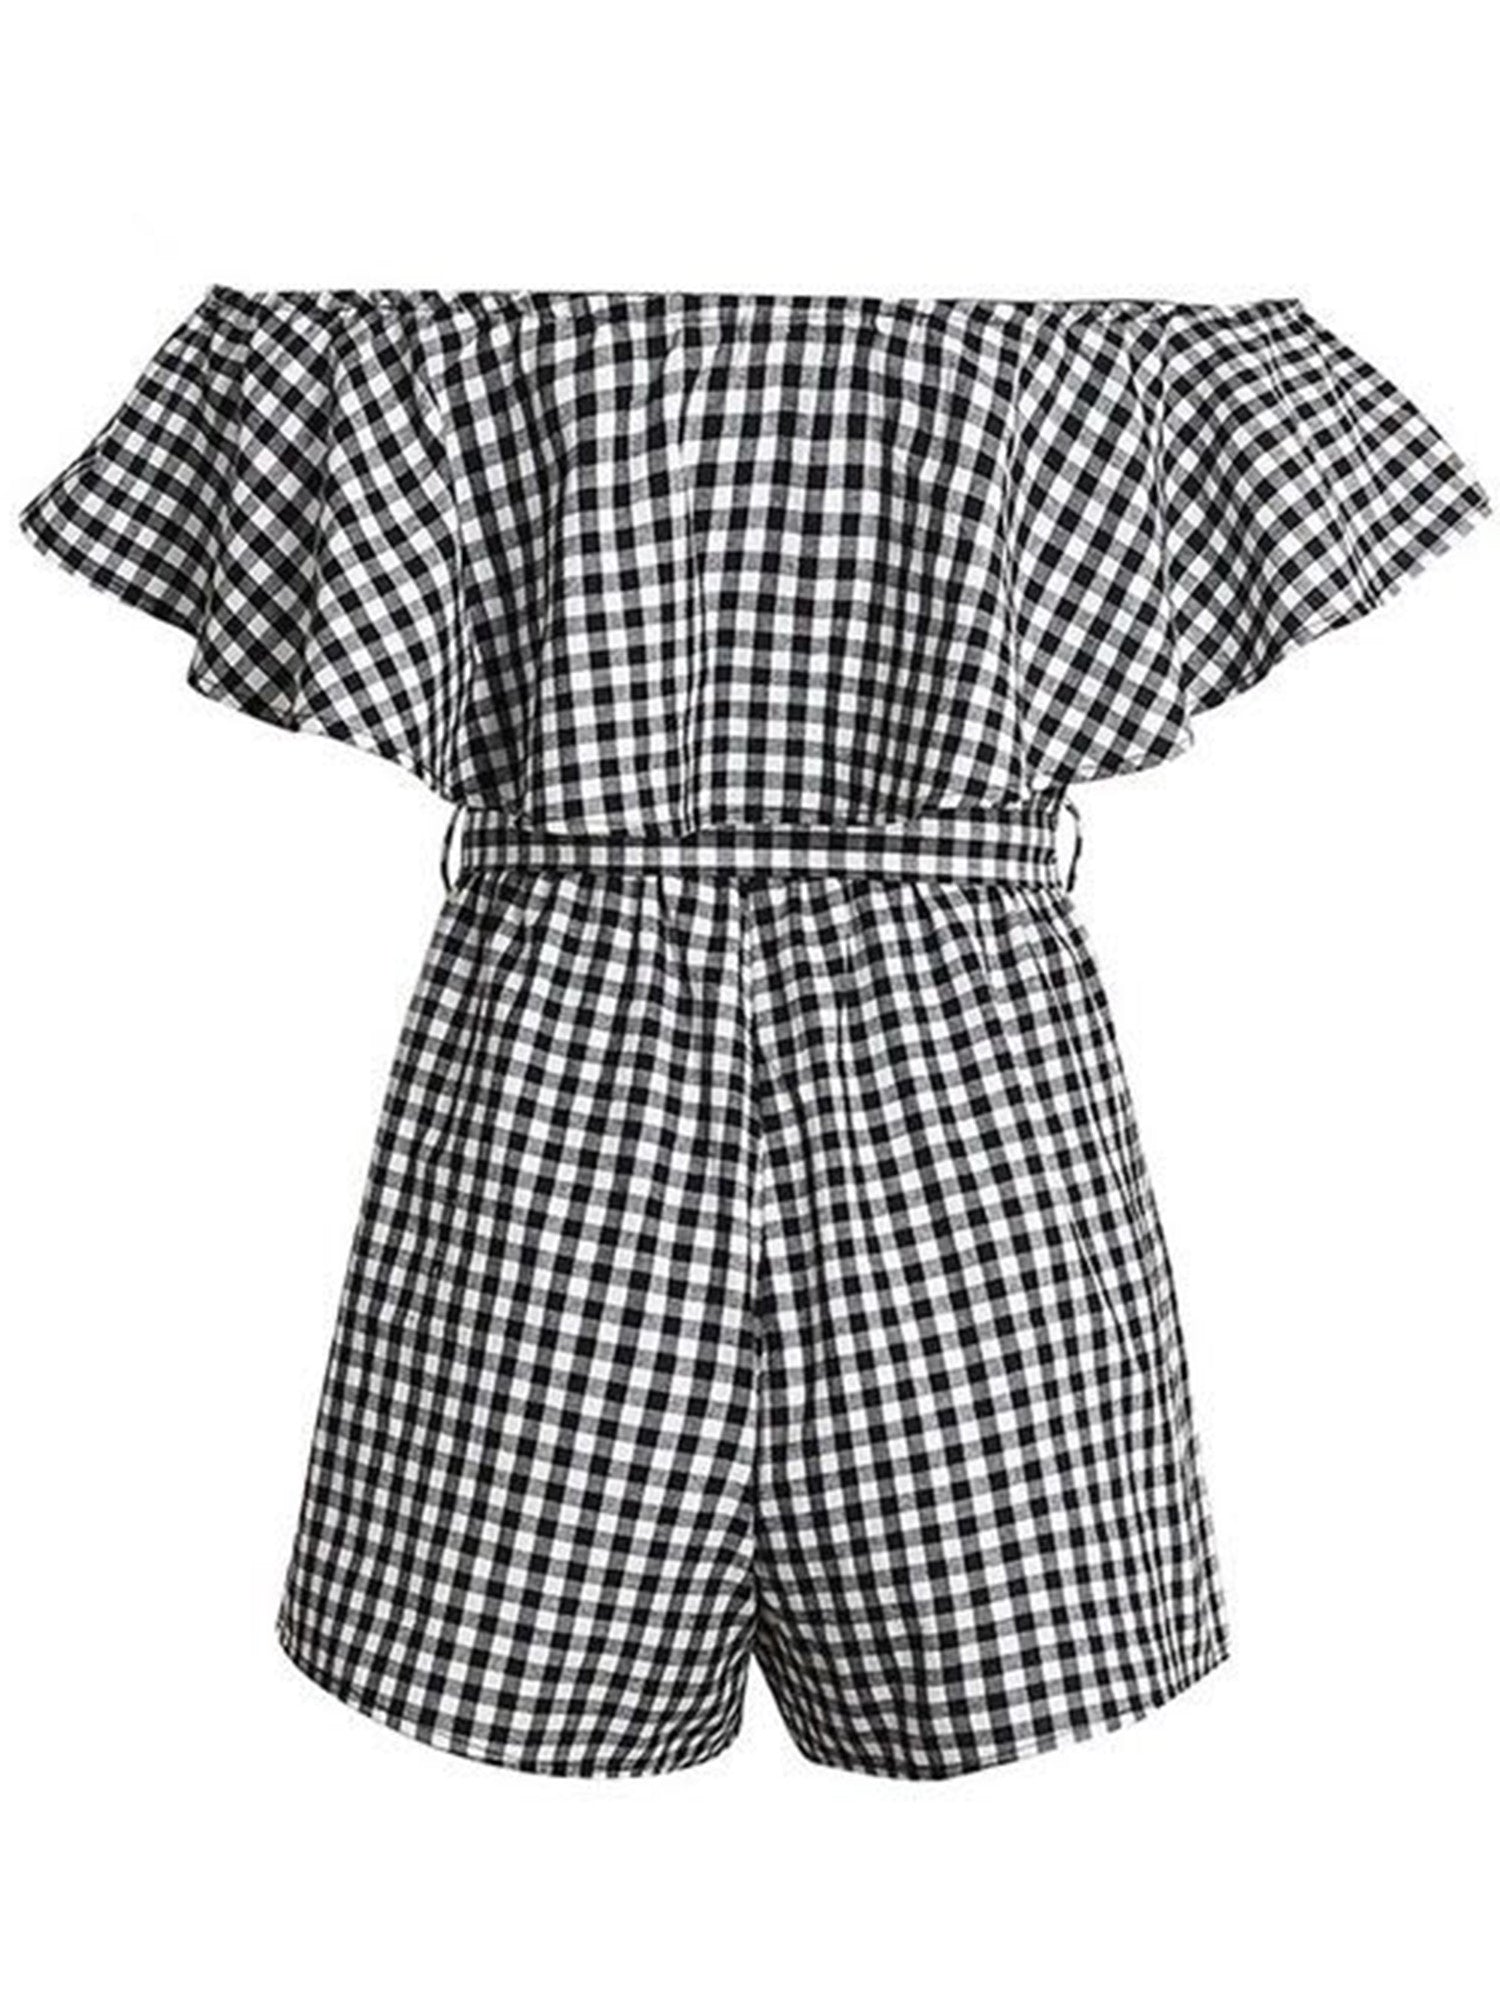 'Sheena' Plaid Ruffle Off Shoulder Romper